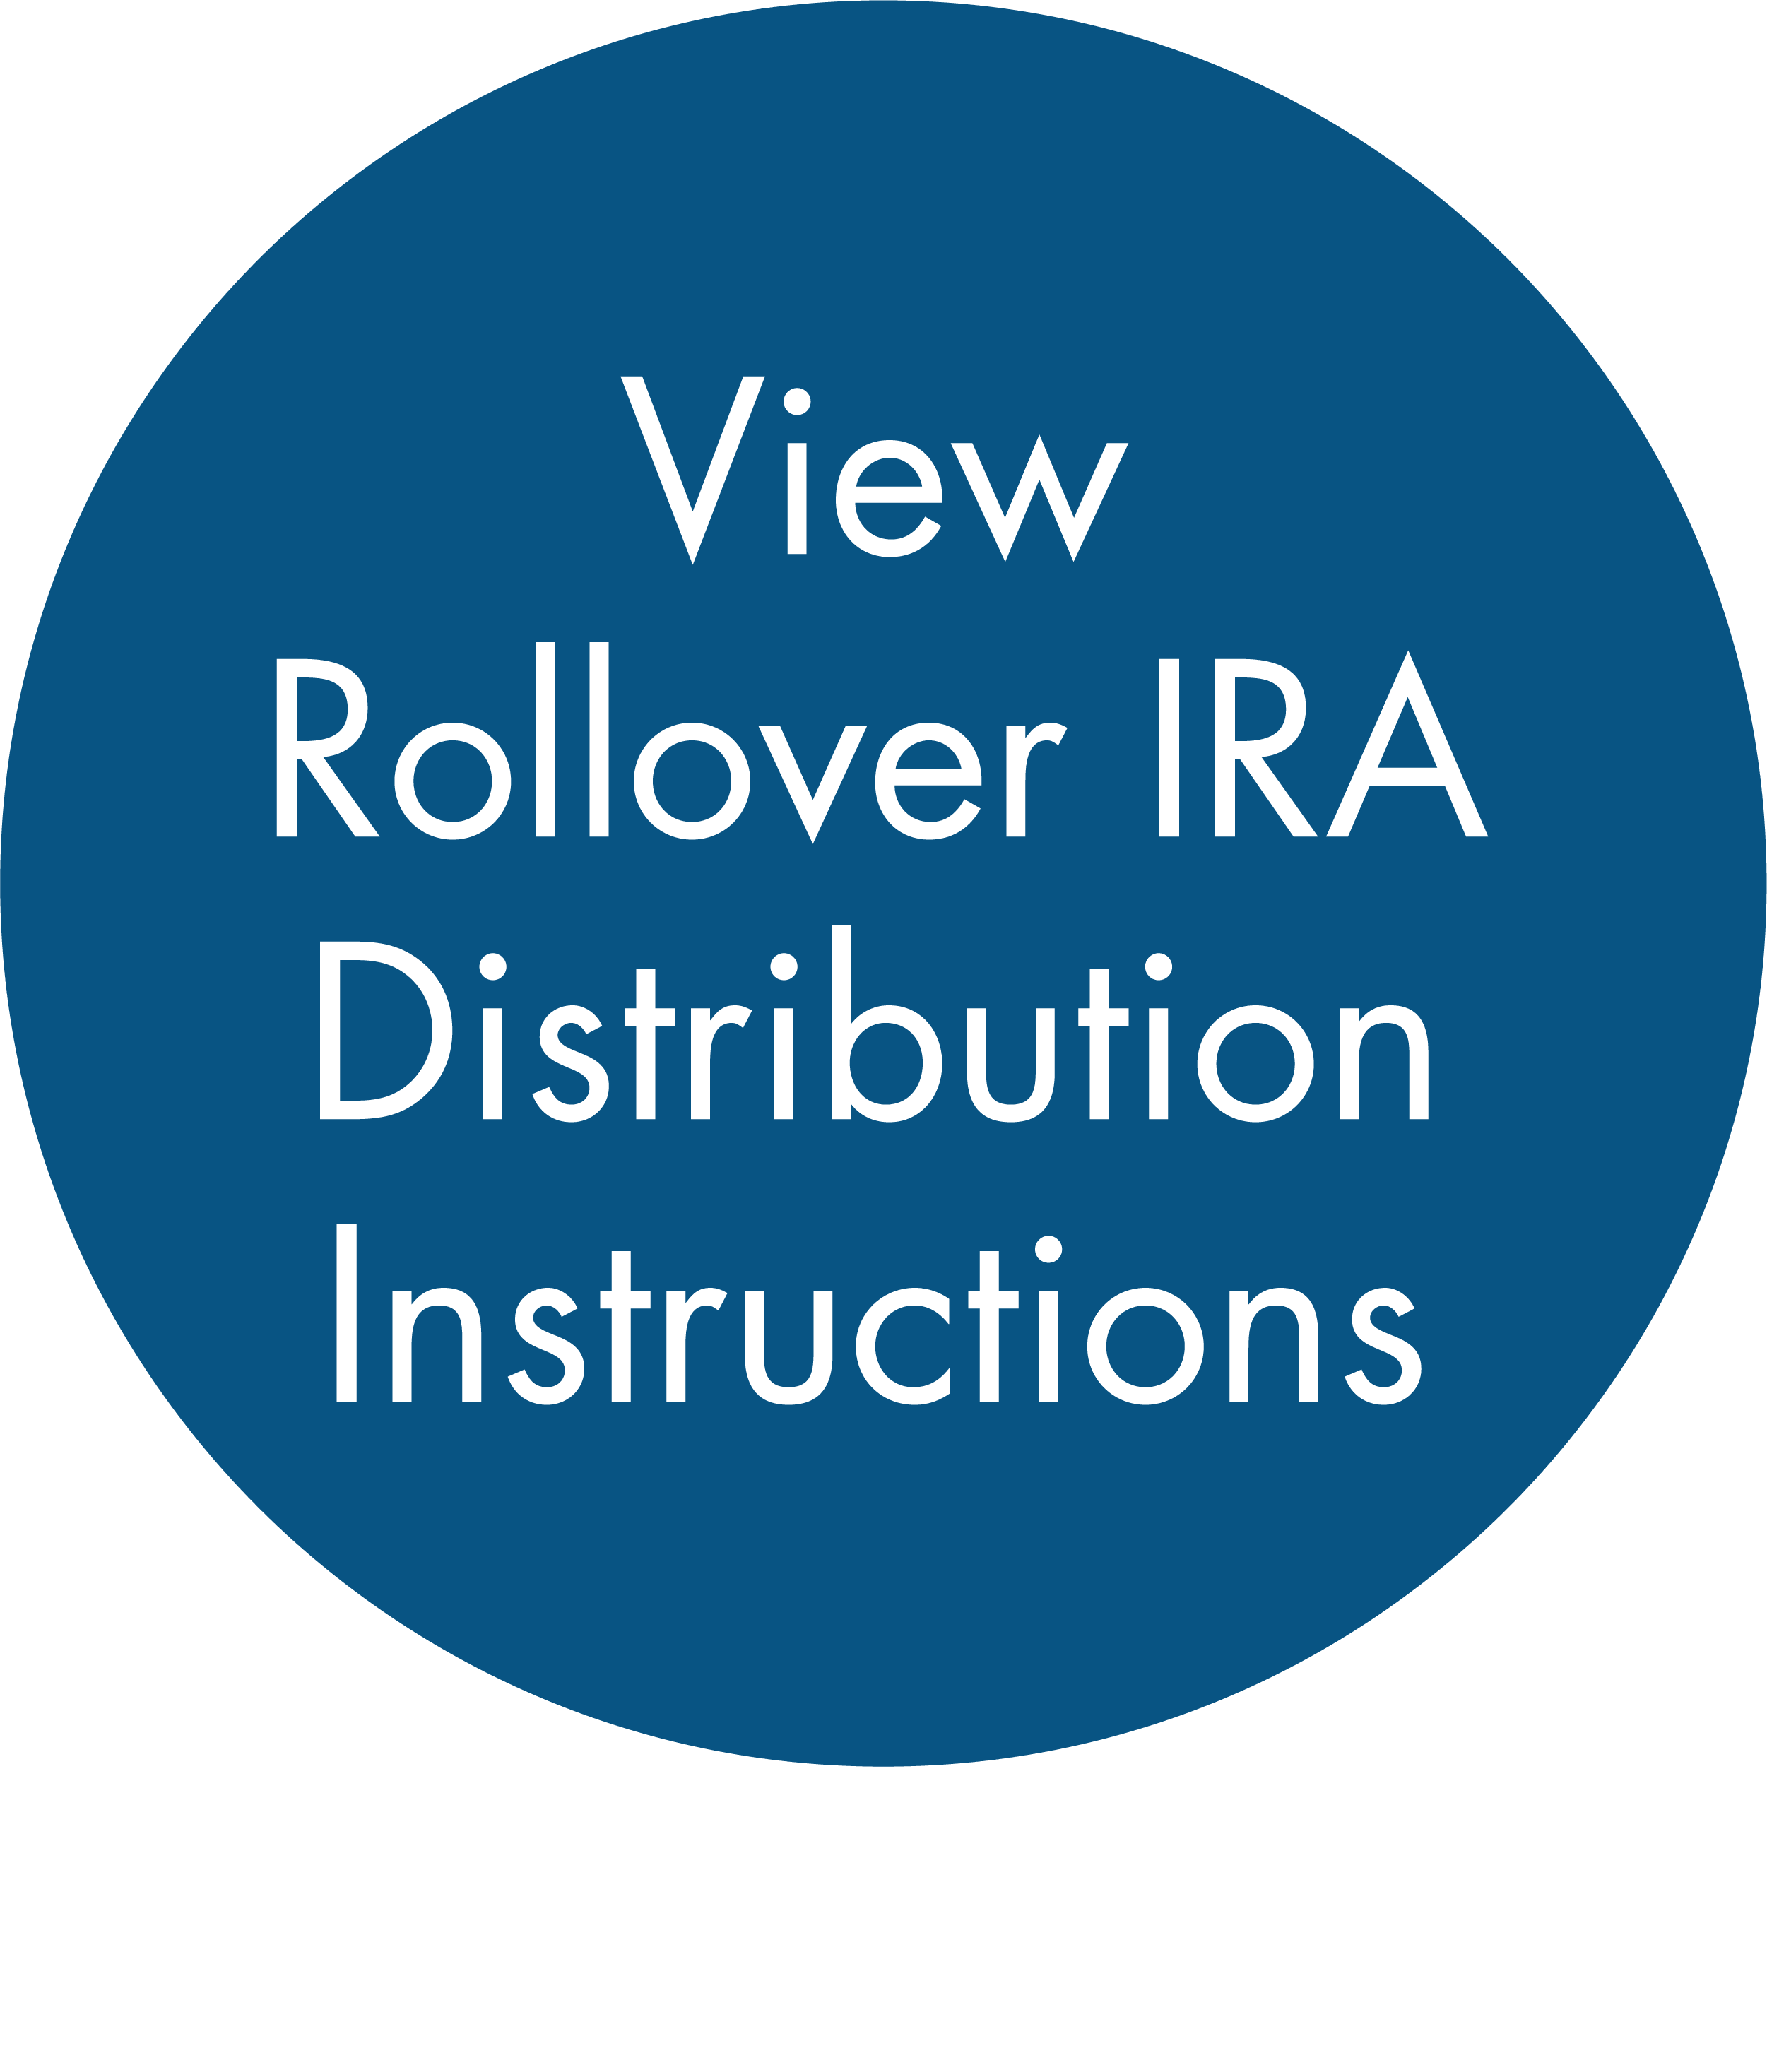 View Rollover IRA Distribution Instructions